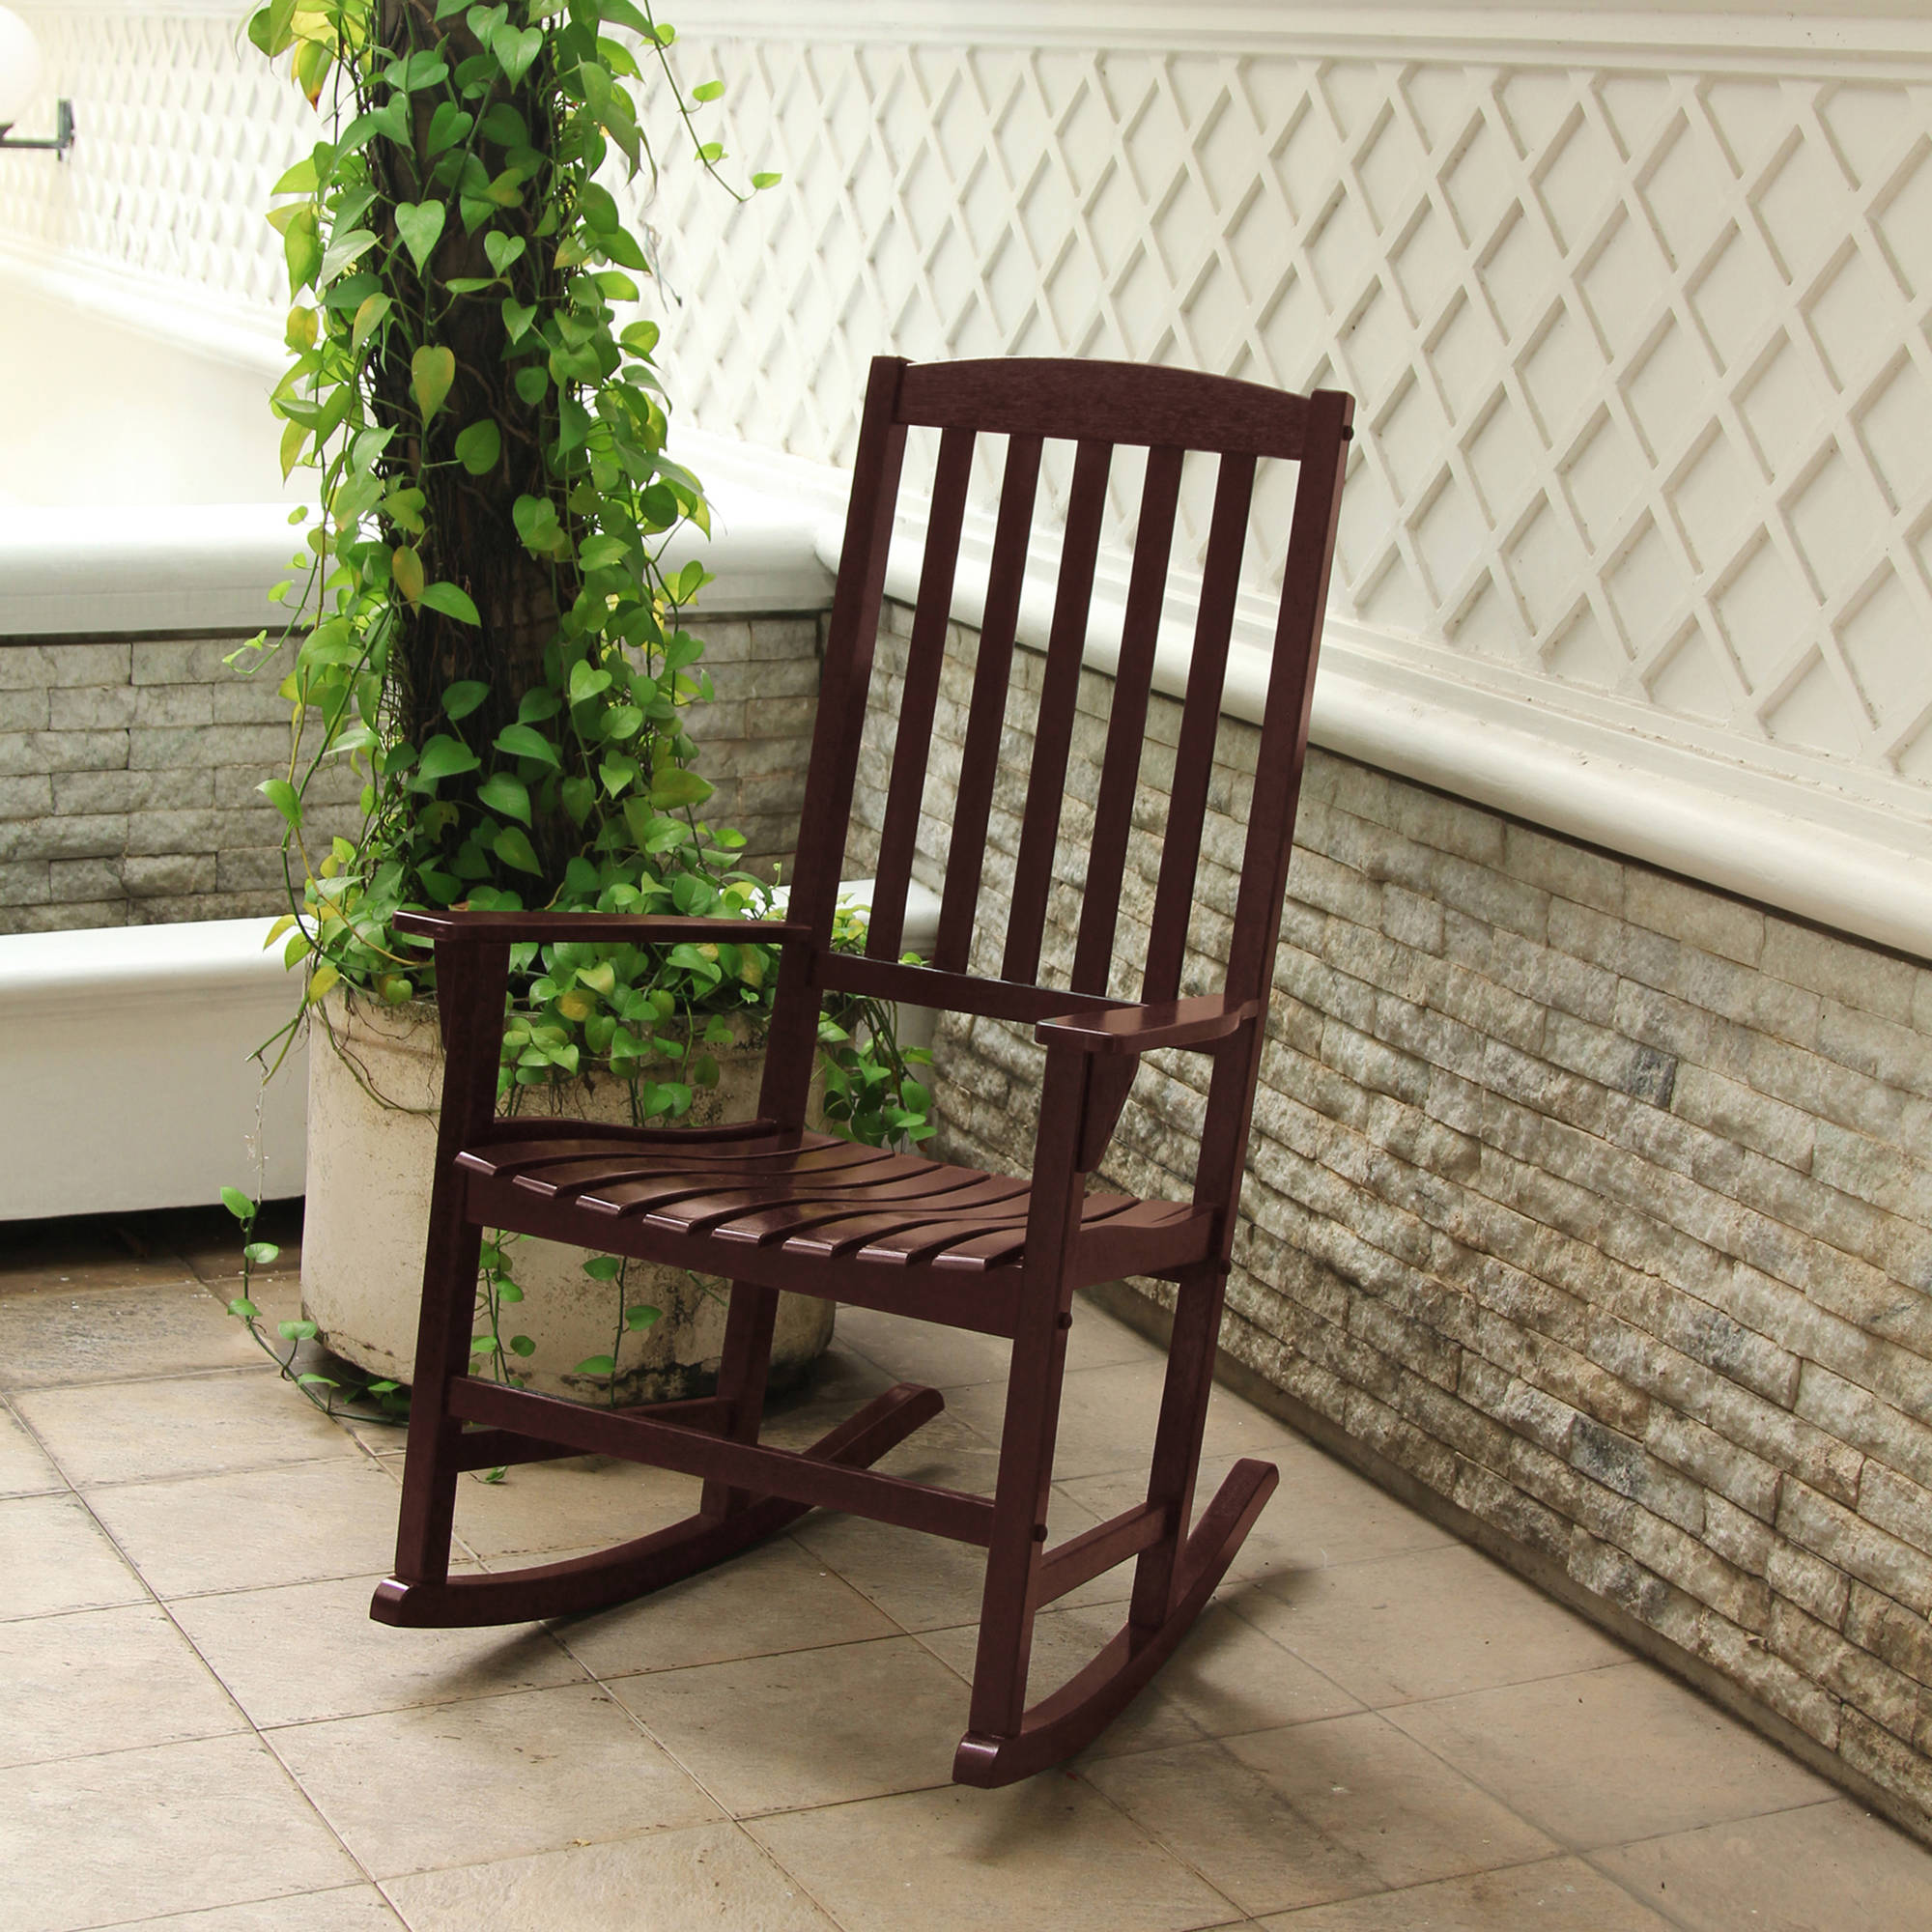 Mainstays Outdoor Rocking Chair, Brown